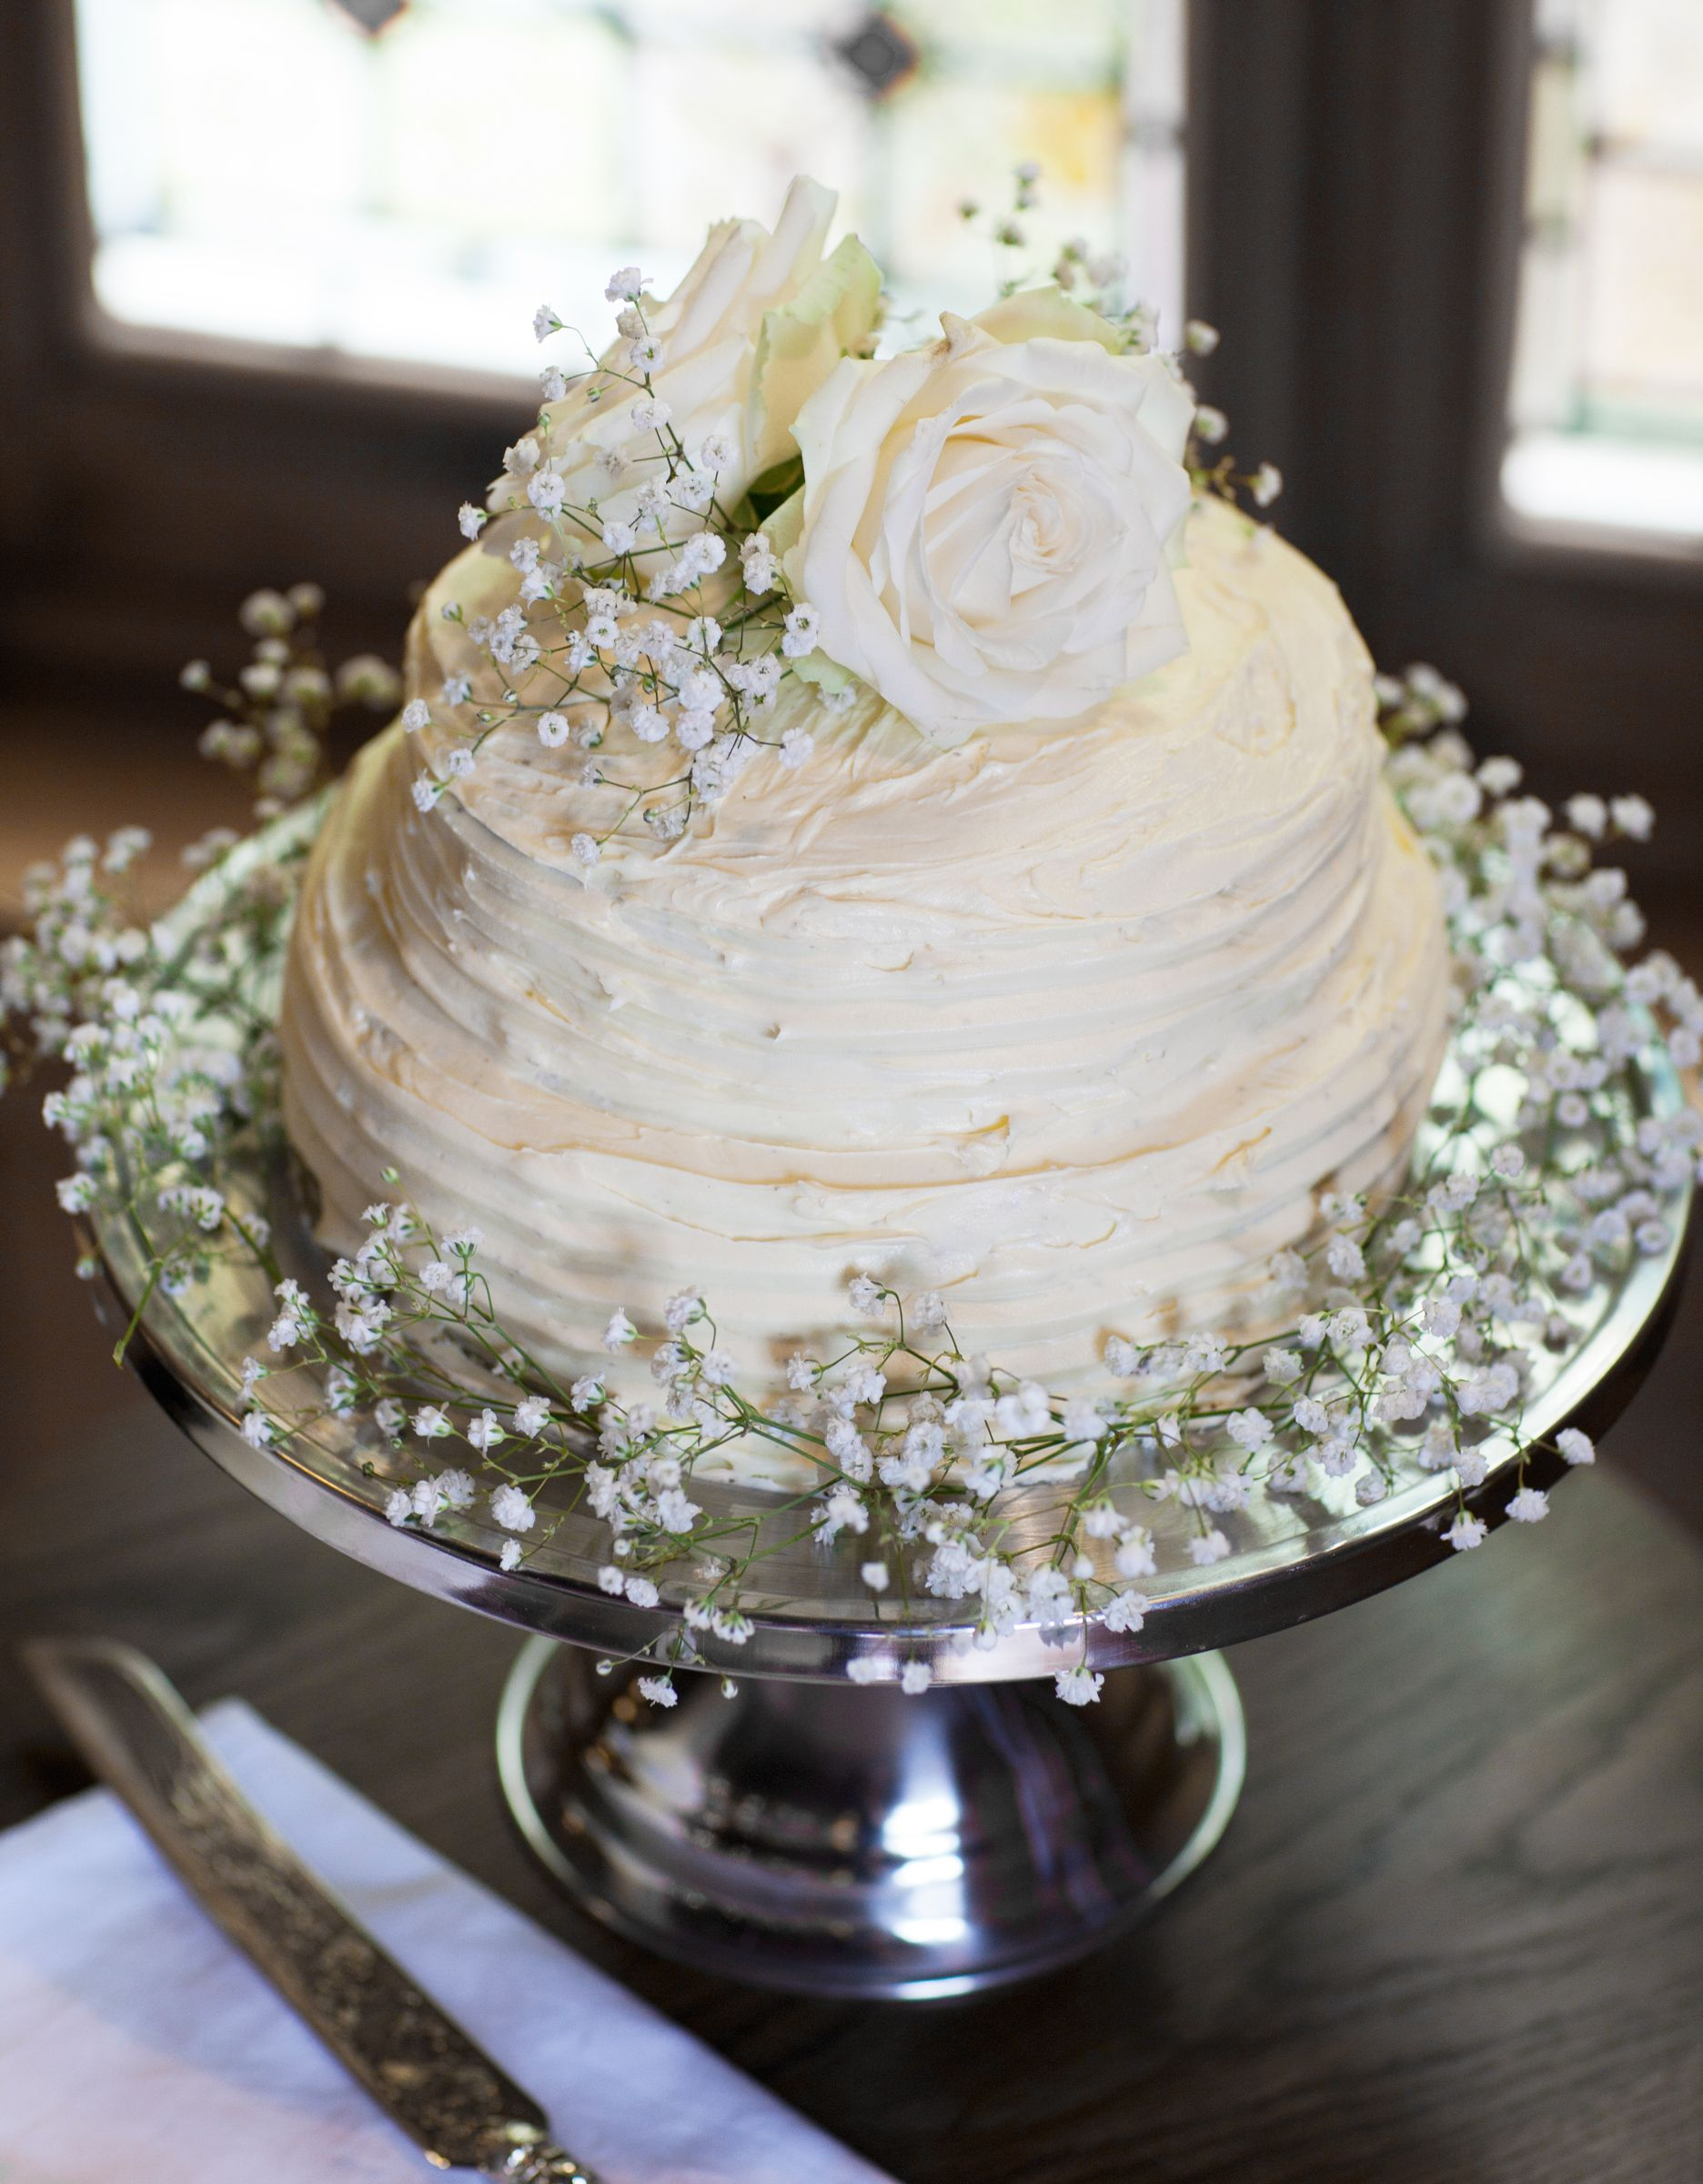 Diy Wedding How To Make Your Own Wedding Cake Simple Wedding Cake Diy Wedding Cake Wedding Cake Decorations